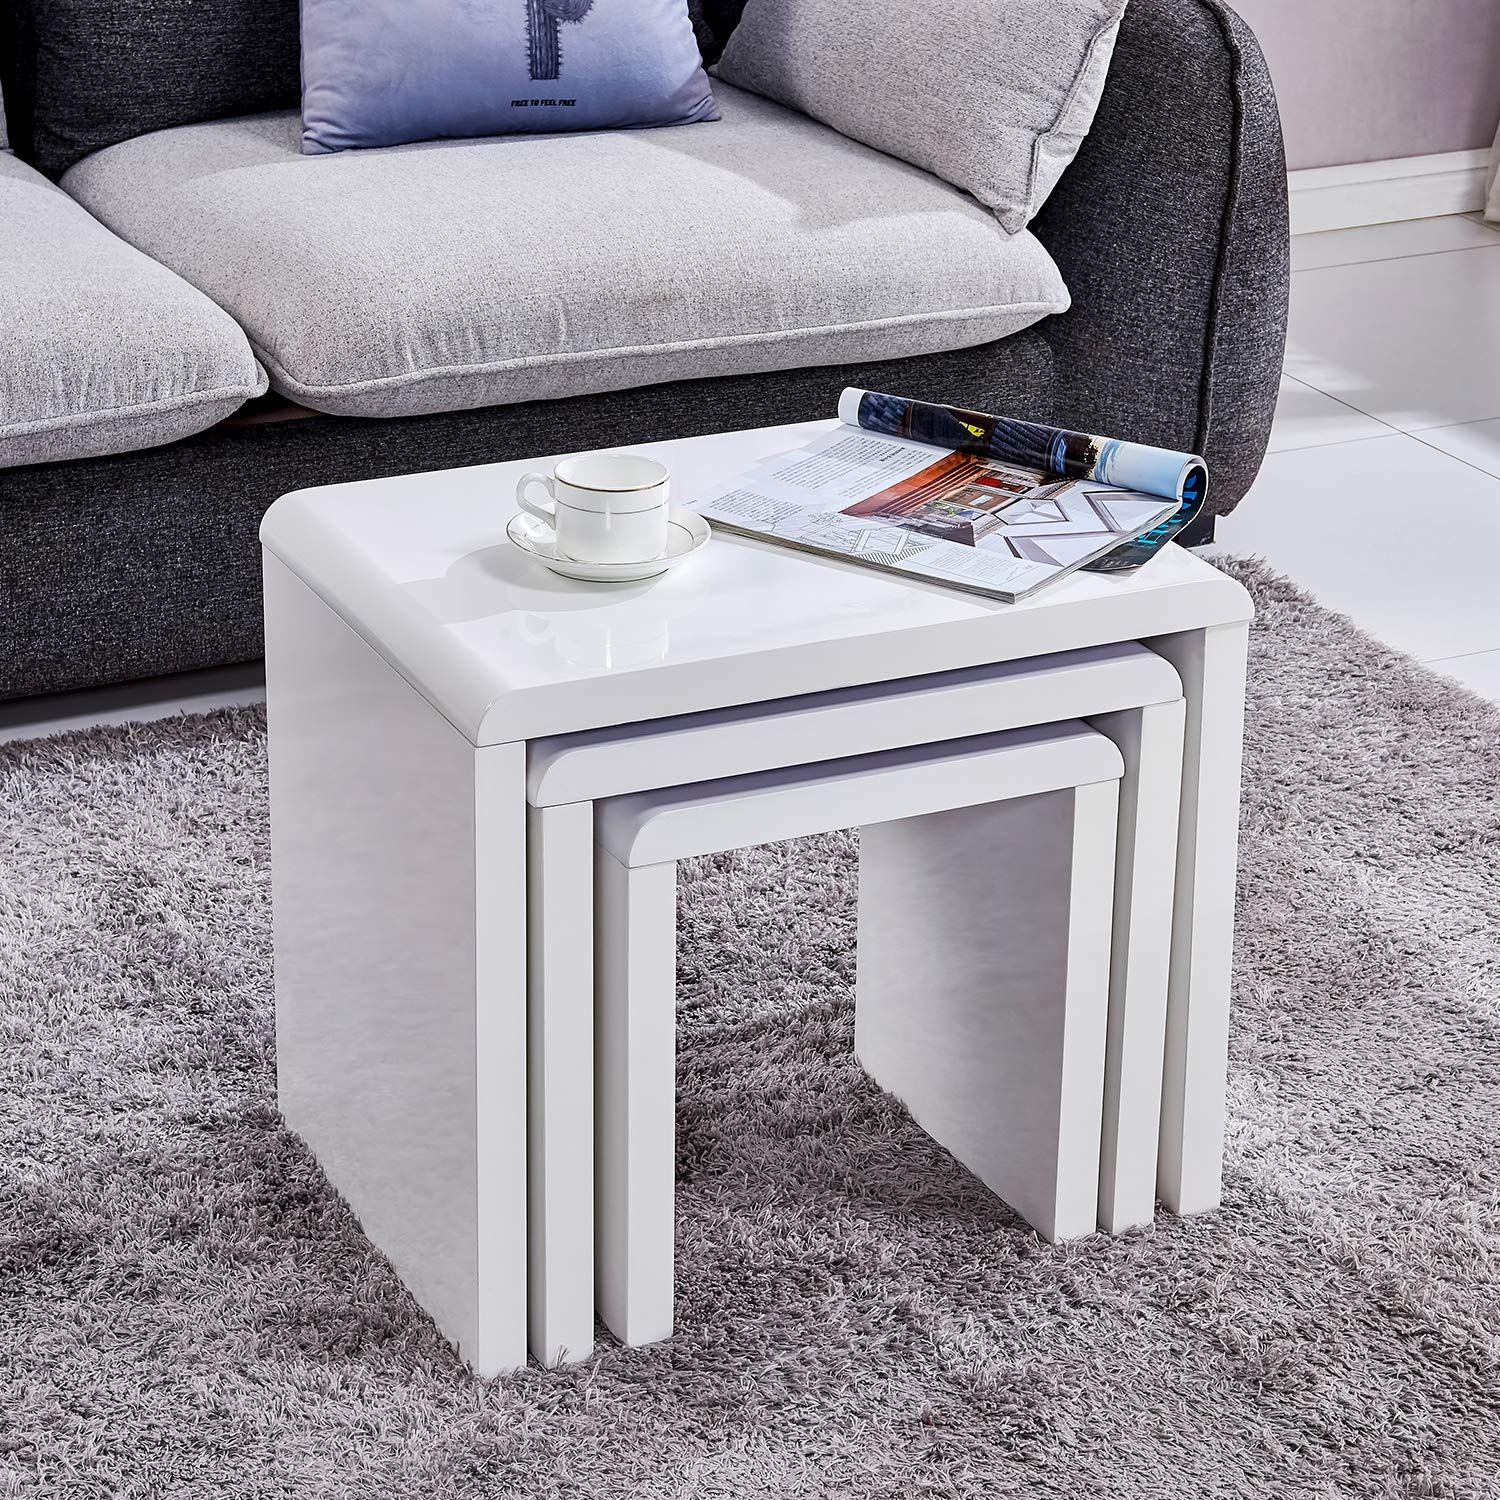 Trustiwood White Coffee Table Set Nesting Of 3 Piece Modern End Side Table Sofa Table Set Of 3 Living Room Living Room Table Sets Coffee Table Living Room Sets